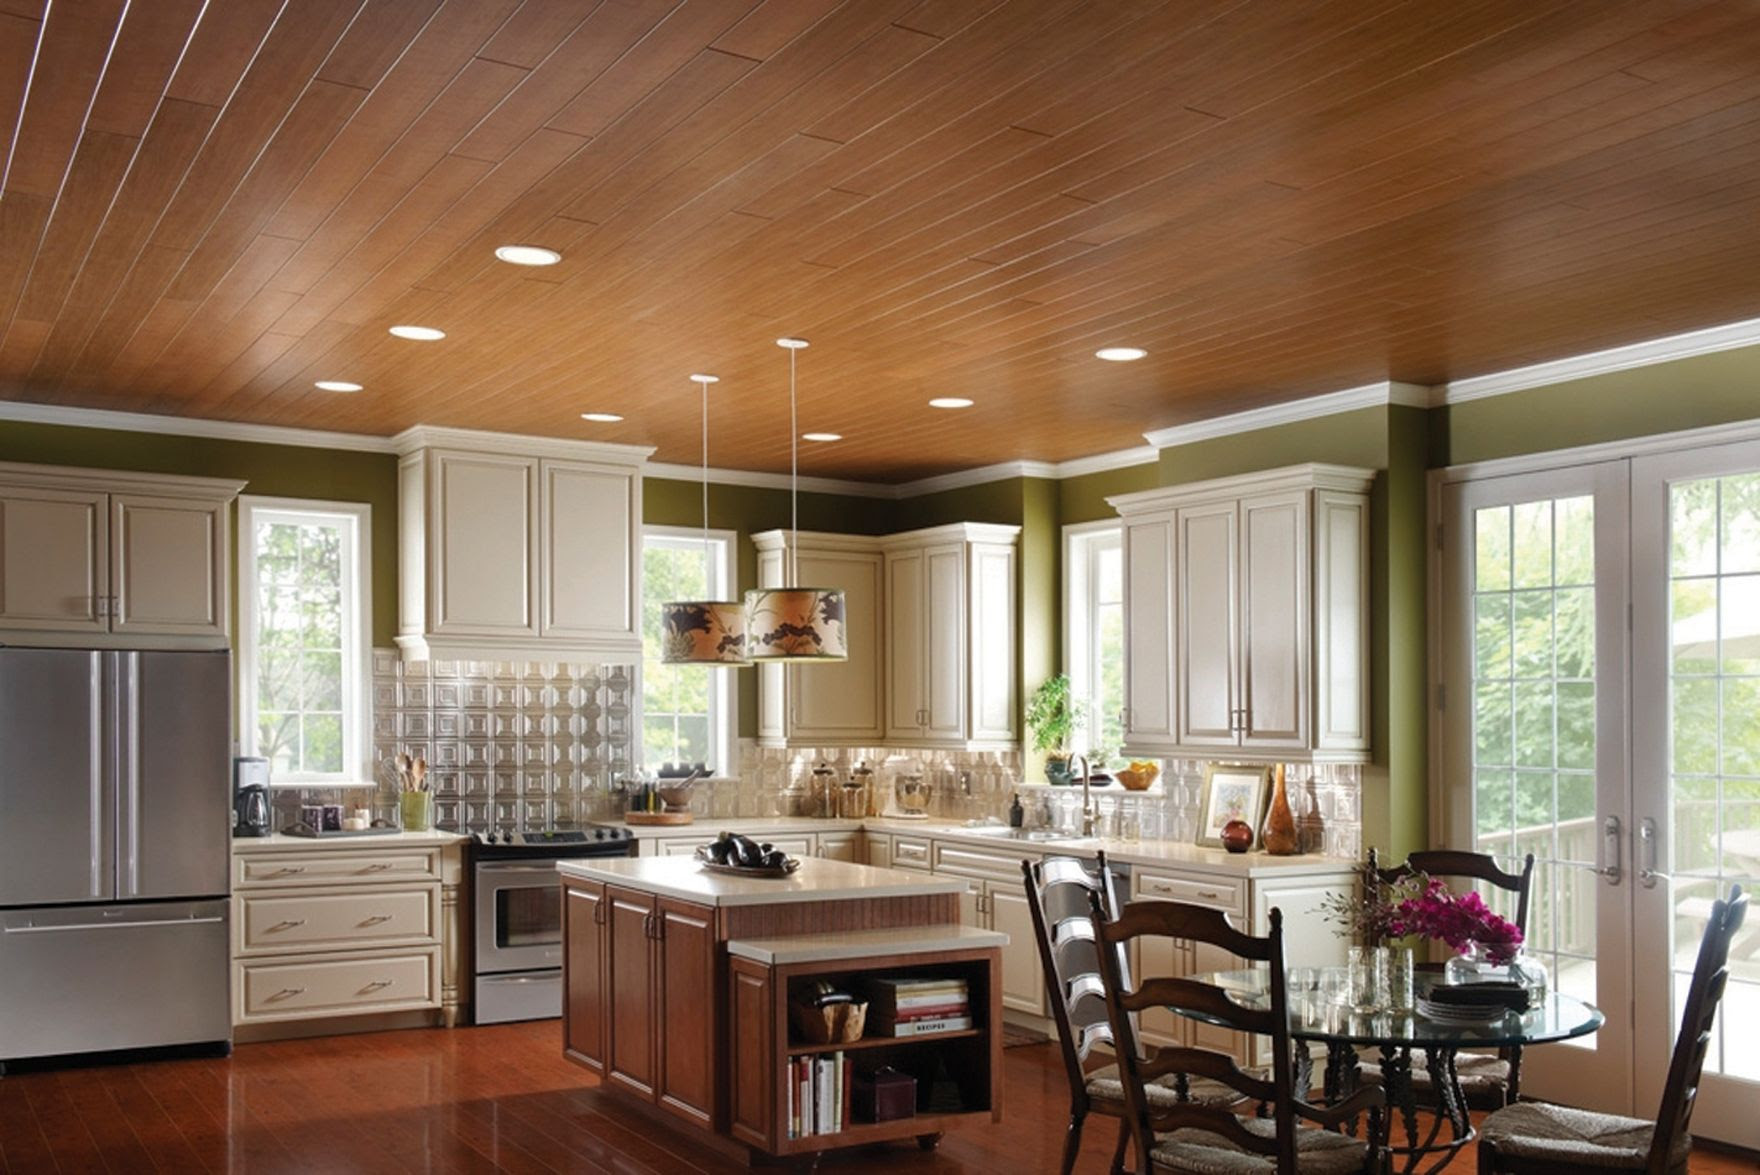 kitchen with dark wooden ceiling planks and white cabinets.